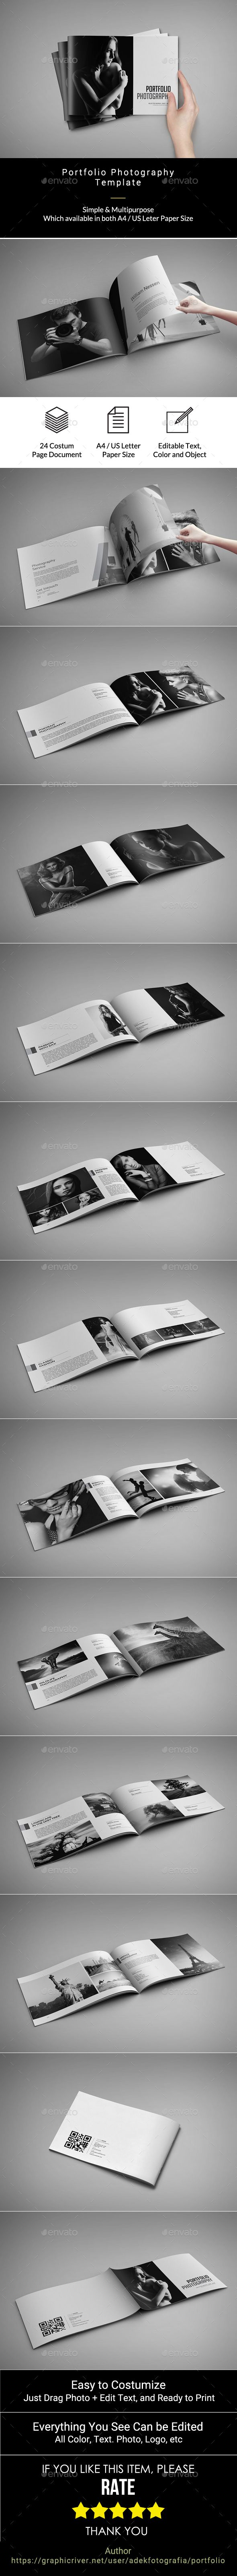 Simple Portfolio Photographer Brochure Template InDesign INDD - 24 Pages, A4 and Letter Size